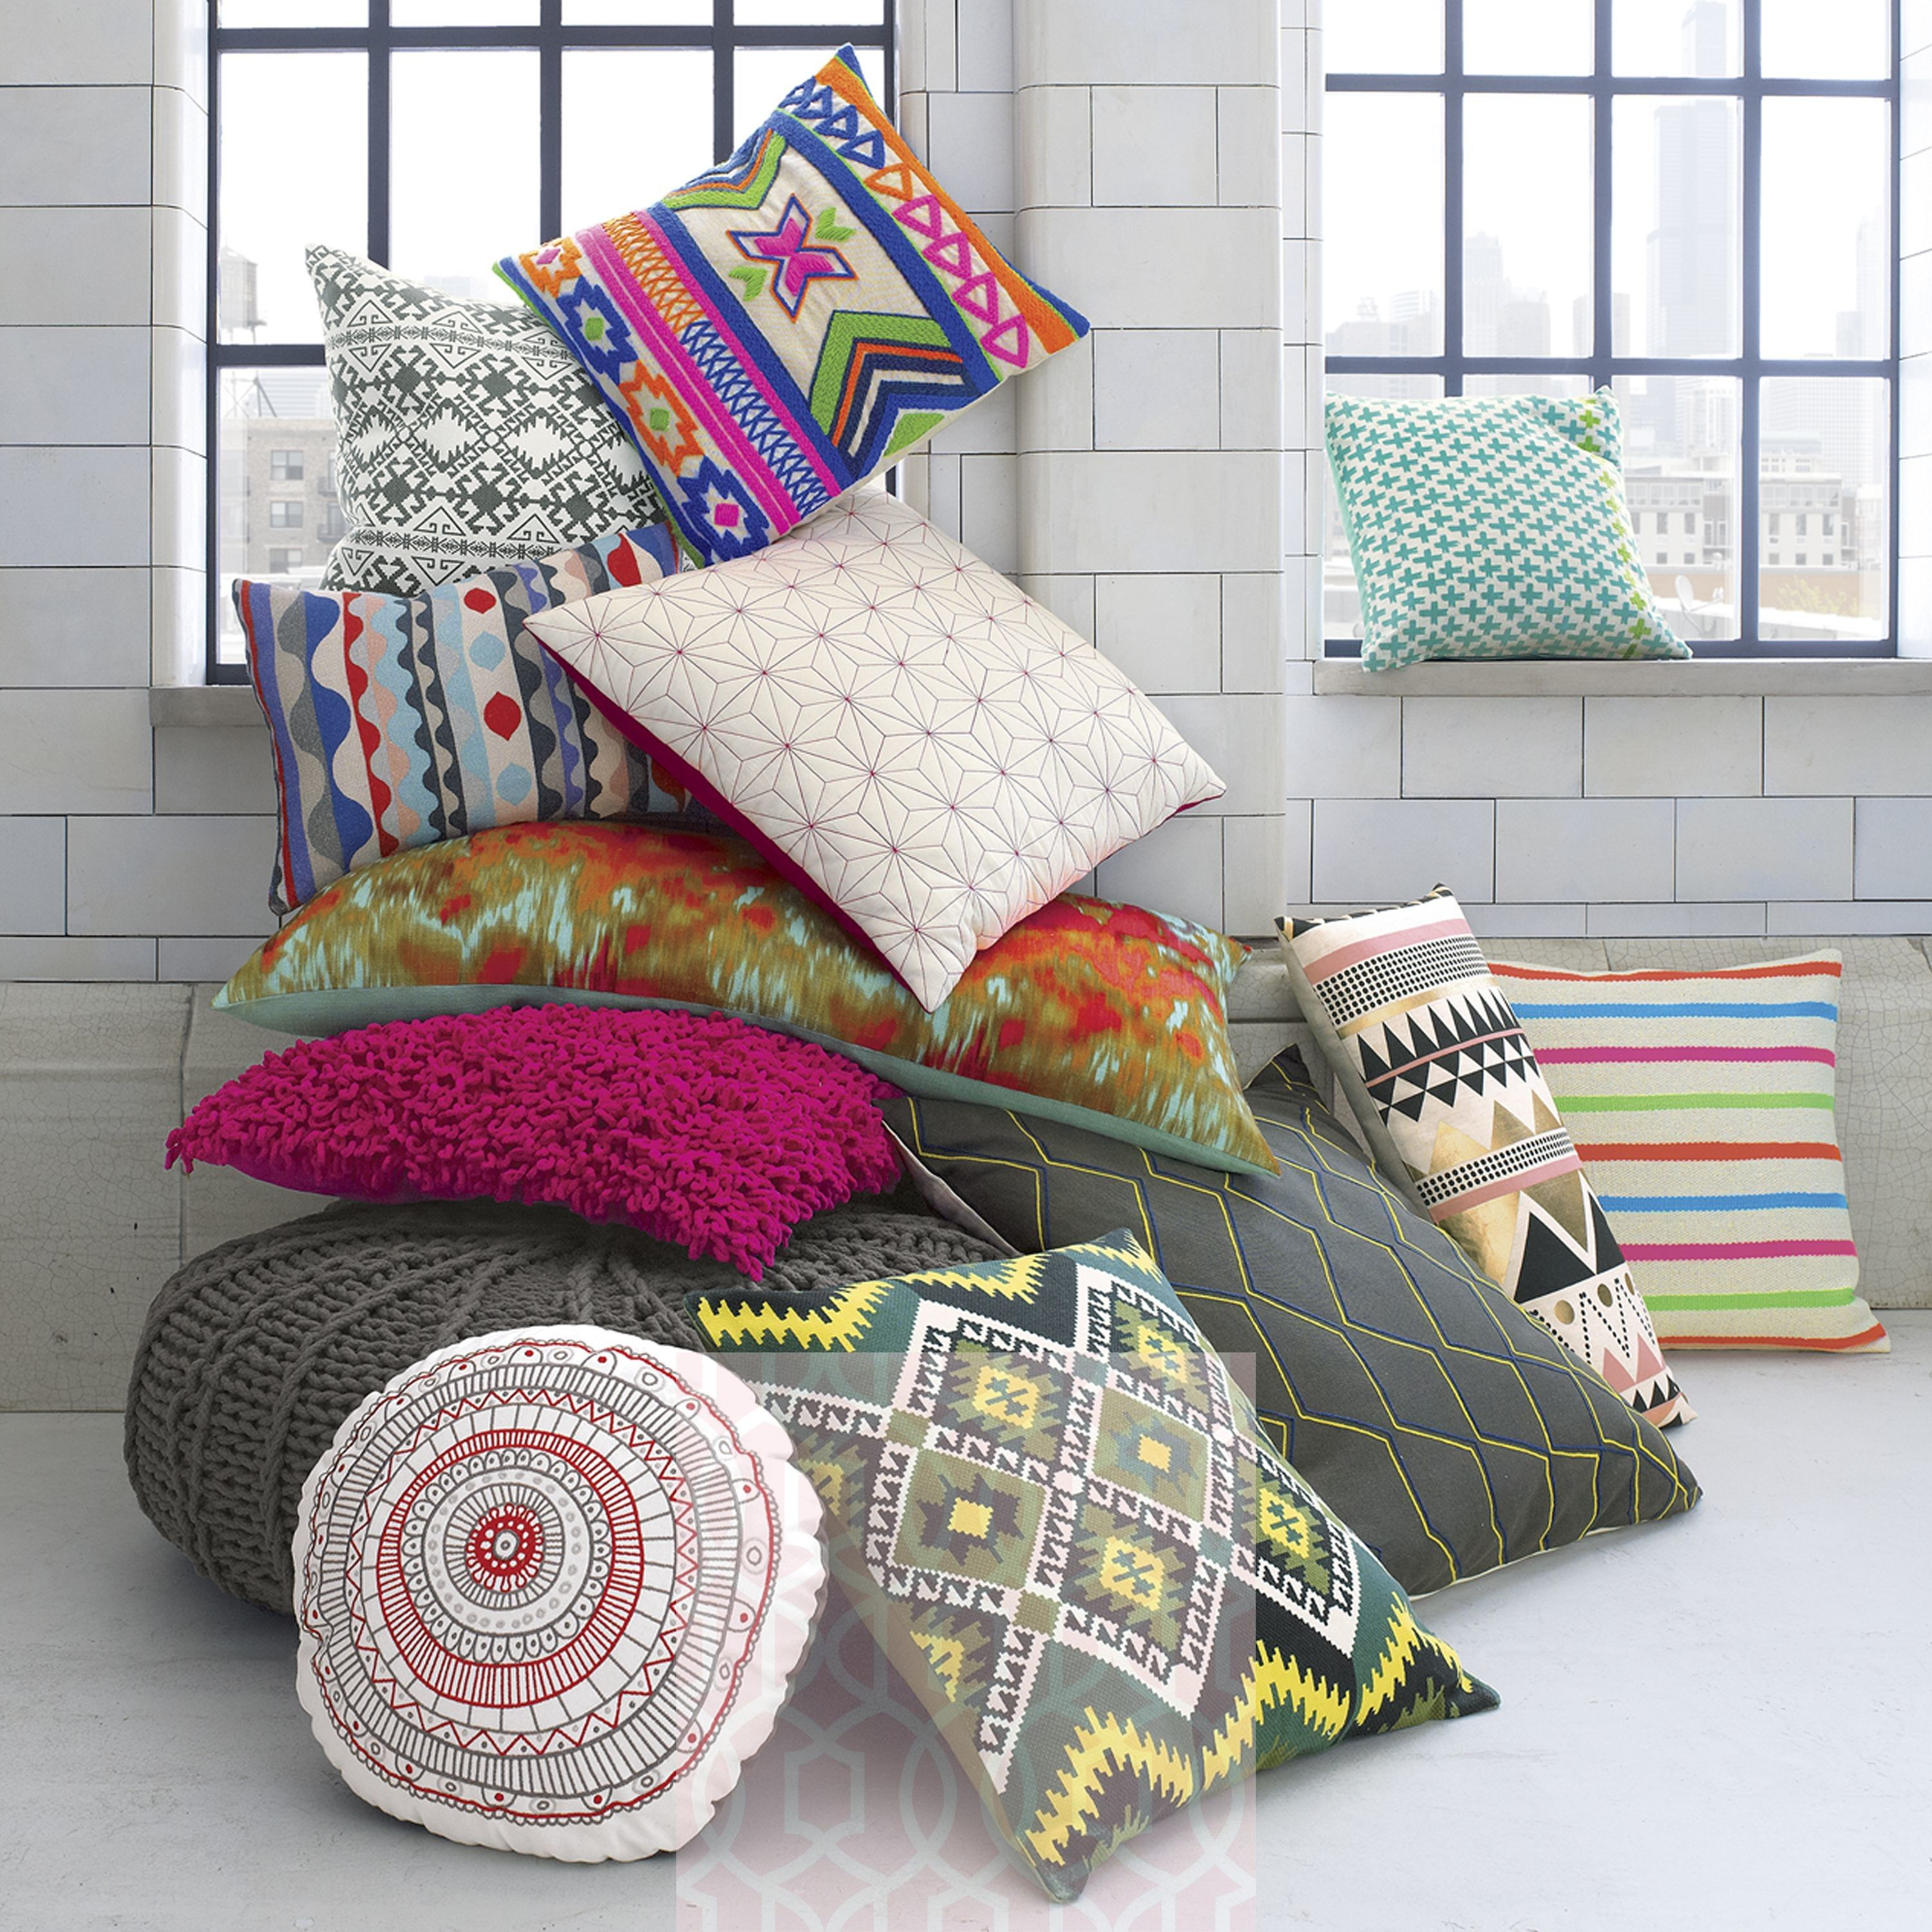 Simple and modern tips and tricks decorative pillows combinations